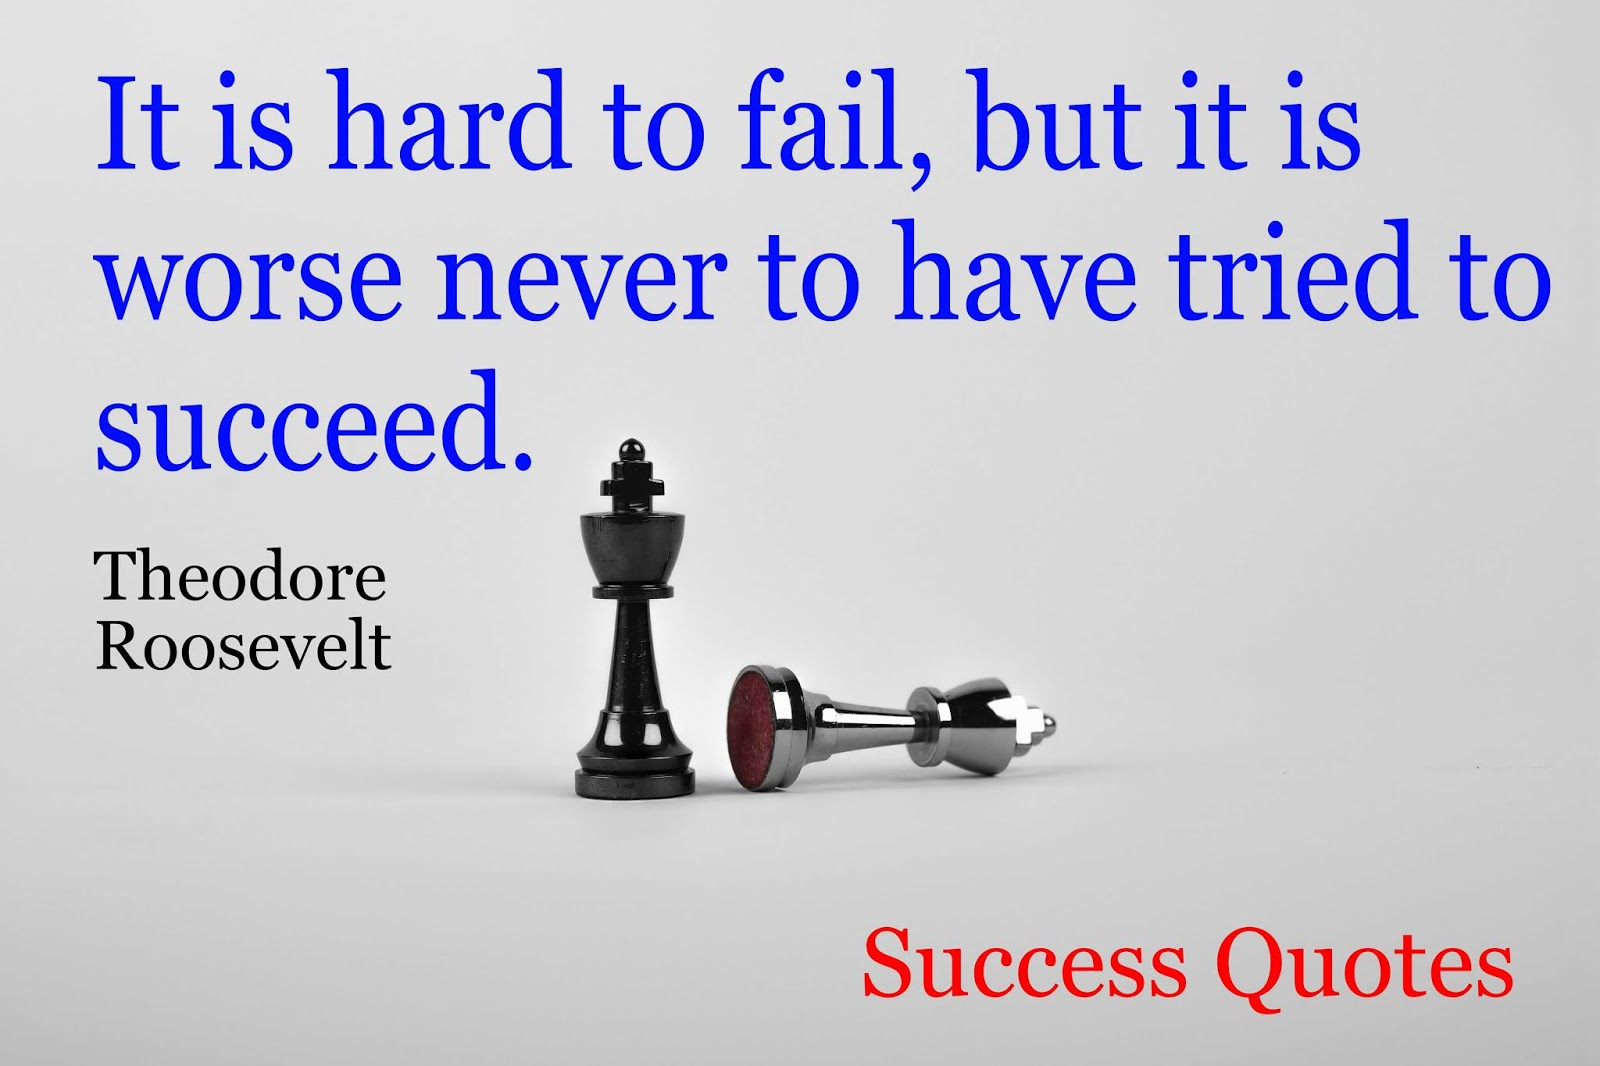 Success Quotes For Students | Success Quotes Inspiring Success Quotes On Life And Business